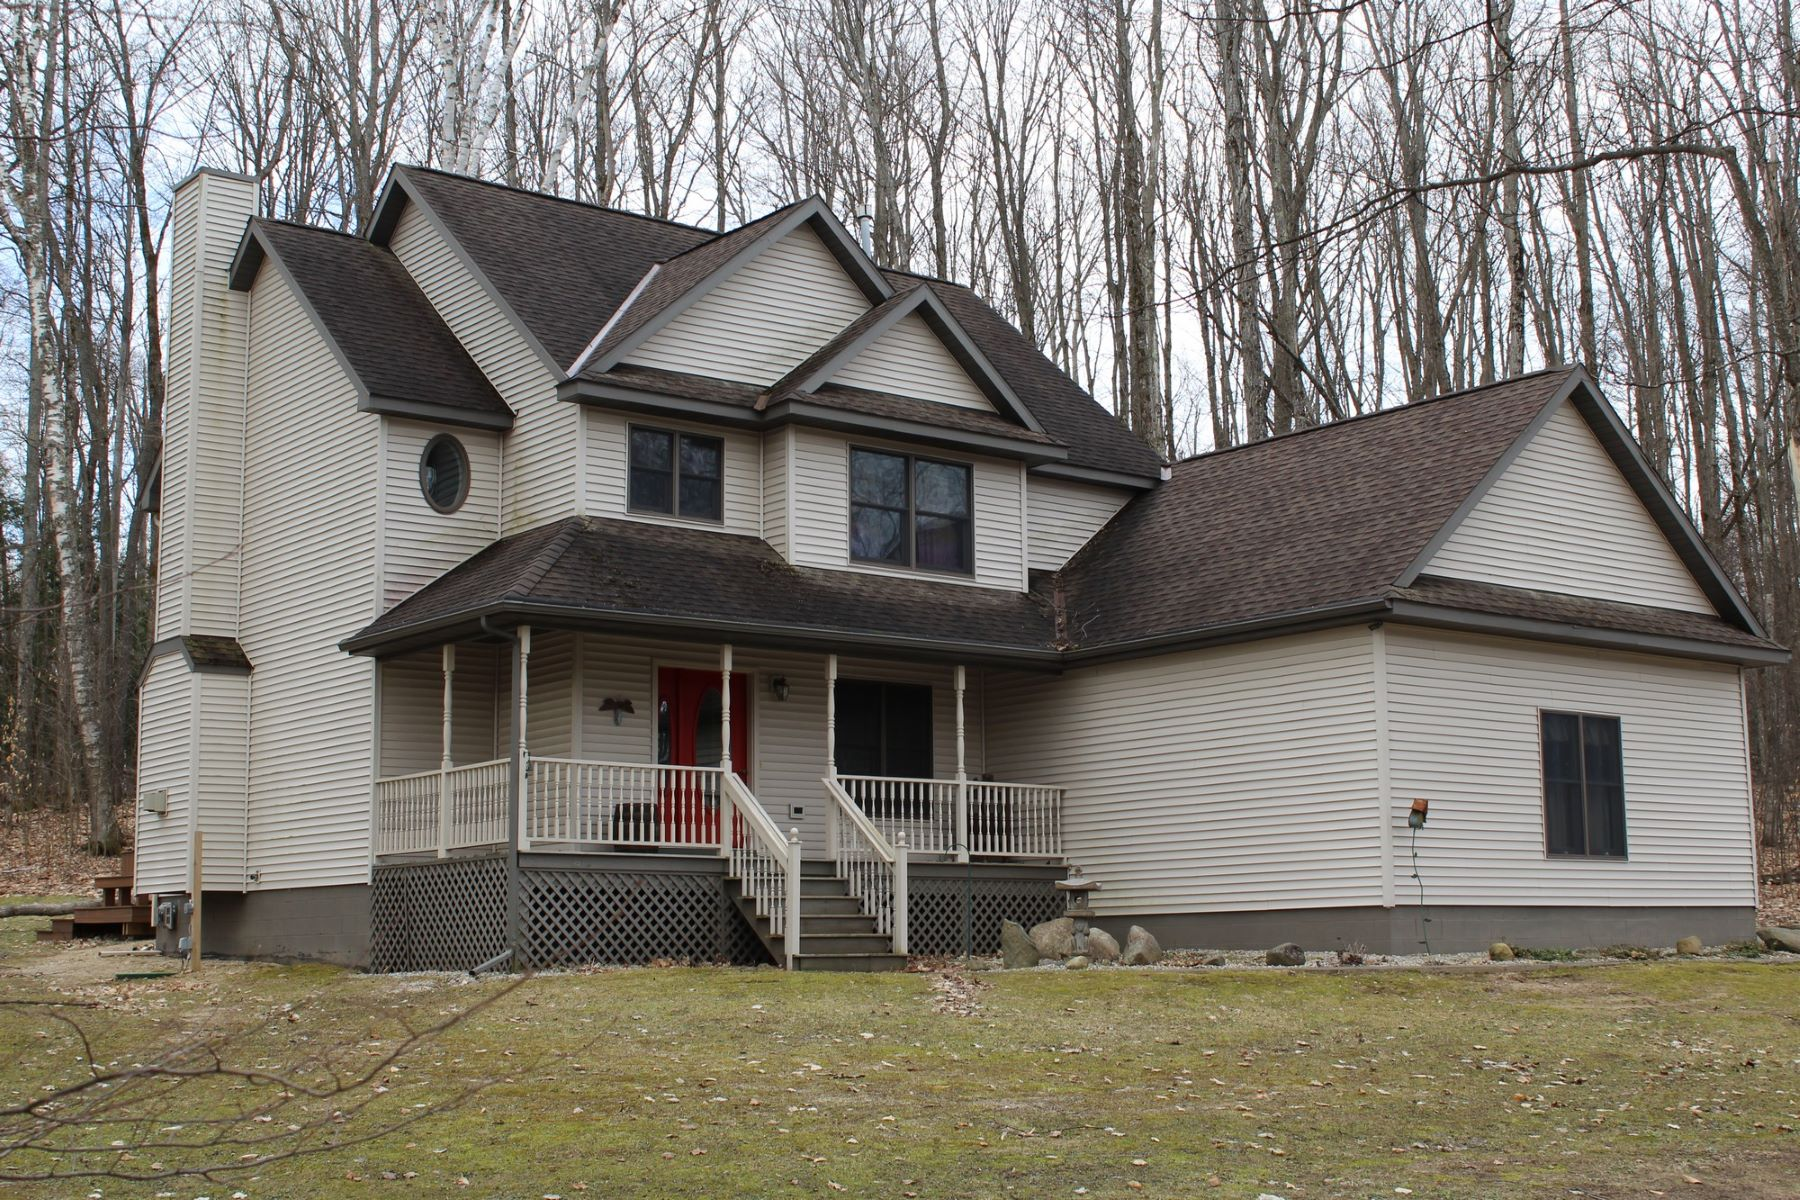 Single Family Home for Sale at 495 Arcadia Harbor Springs, Michigan, 49740 United States